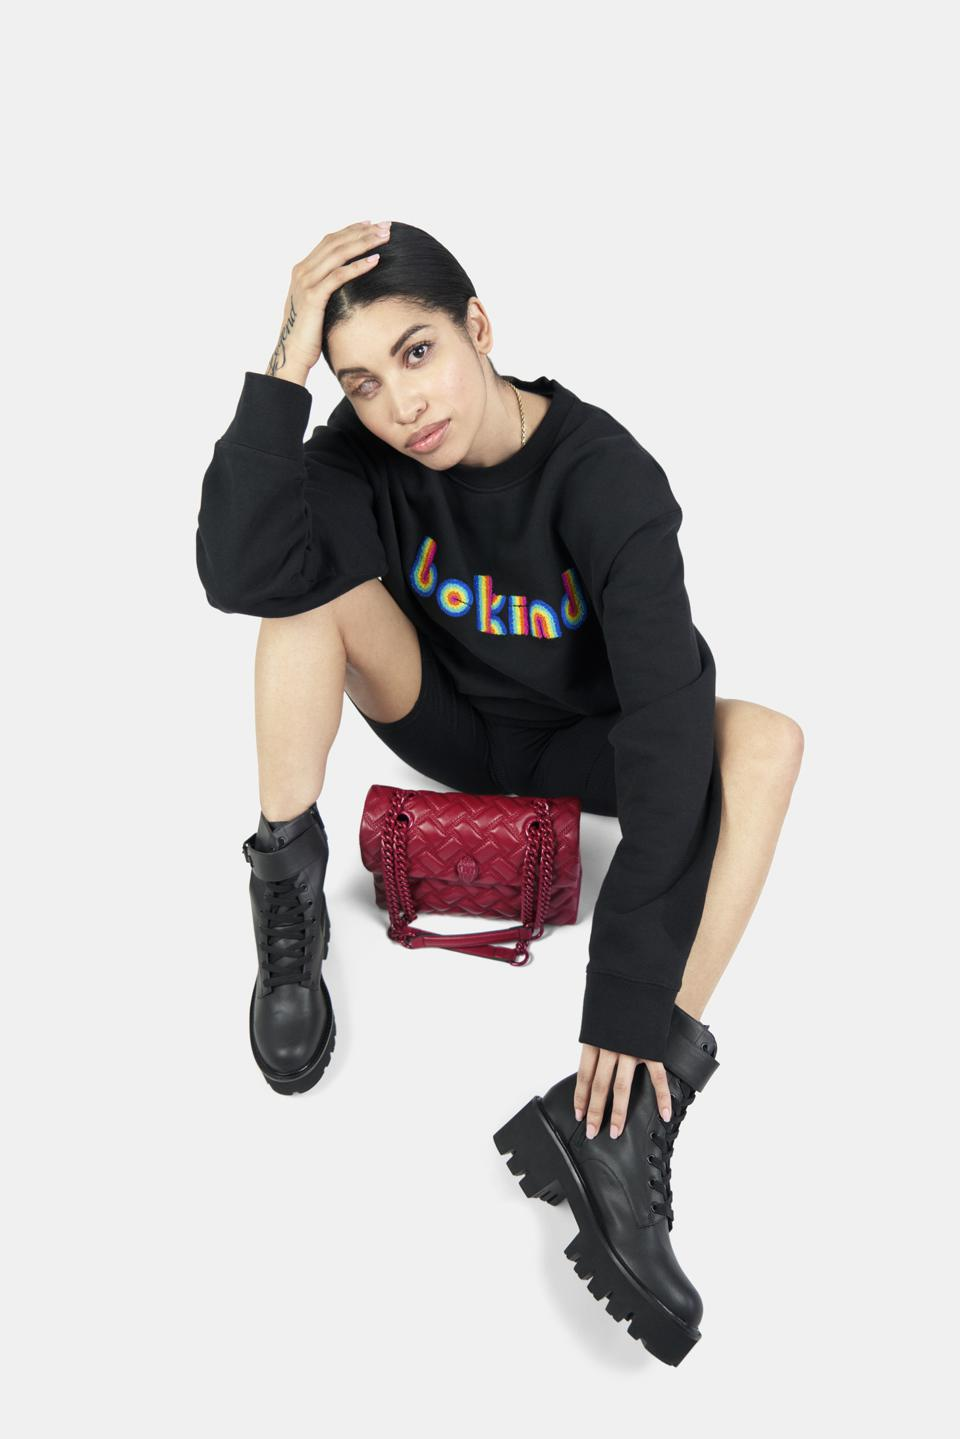 Model wearing Kurt Geiger be kind sweatshirt and recycled leather boots